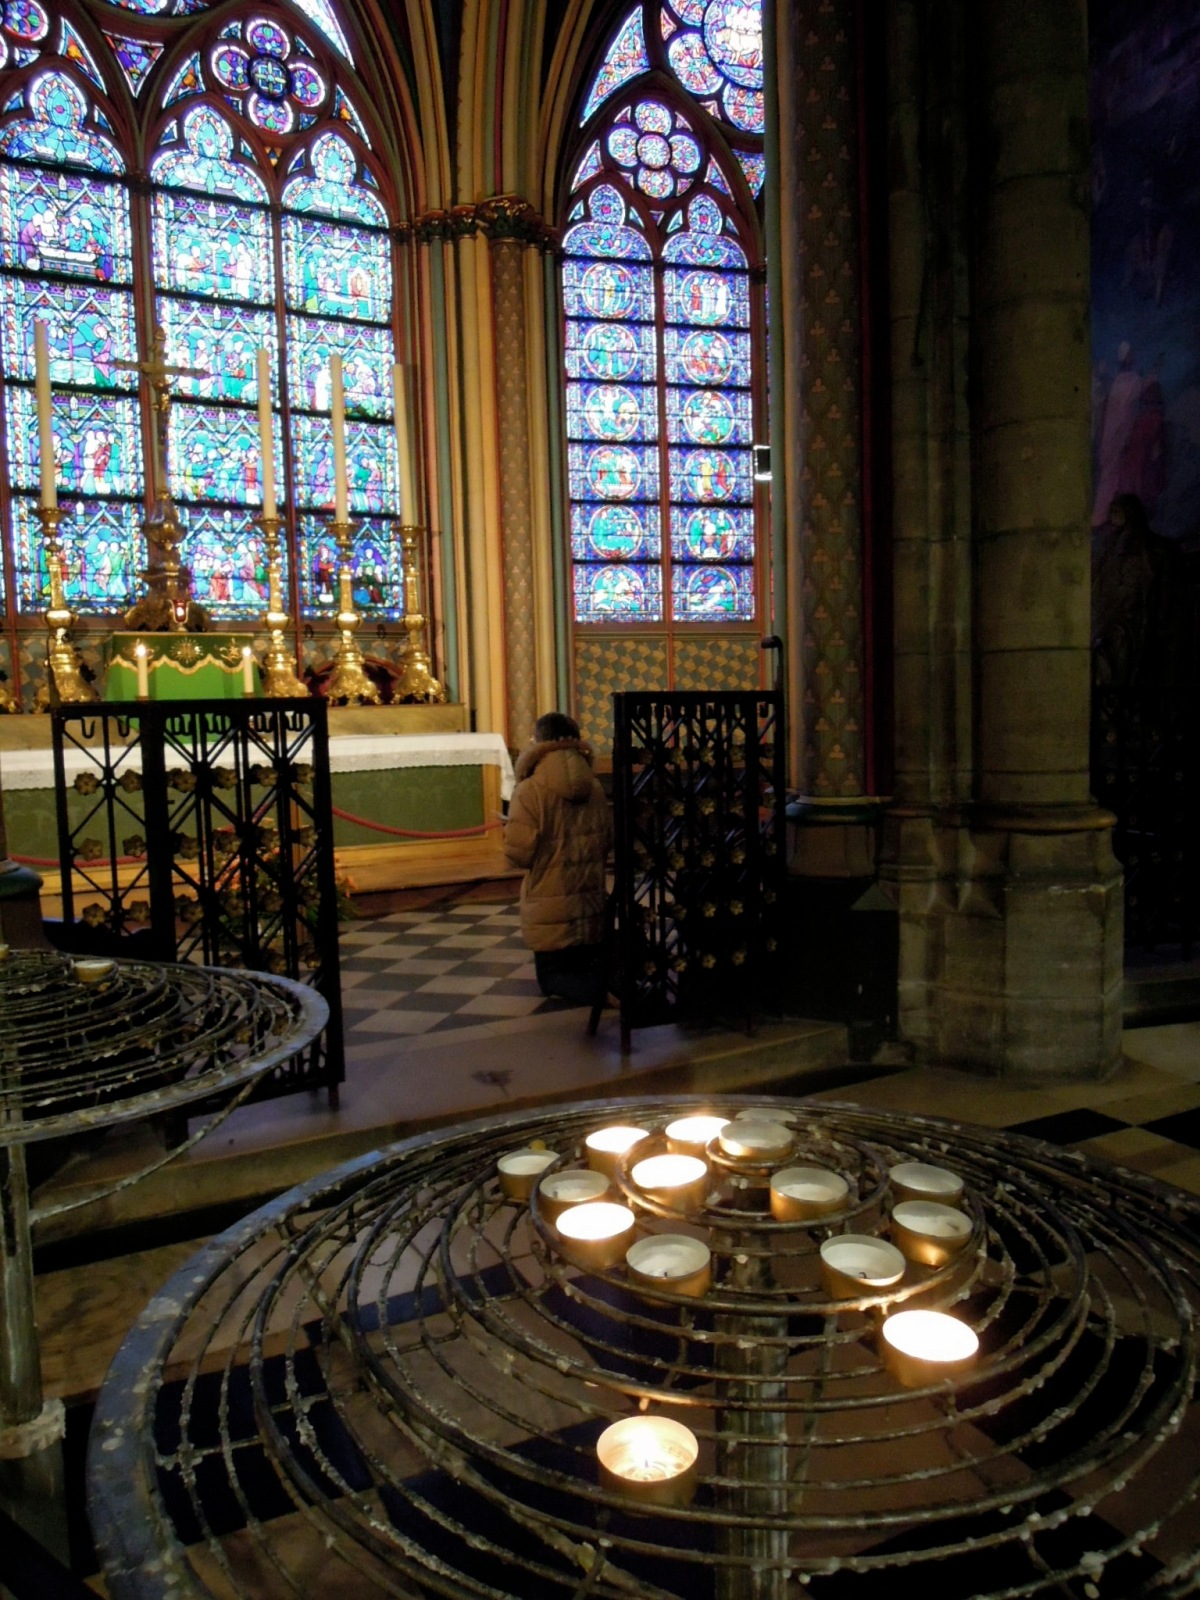 Prayer area with stained glass windows and candles